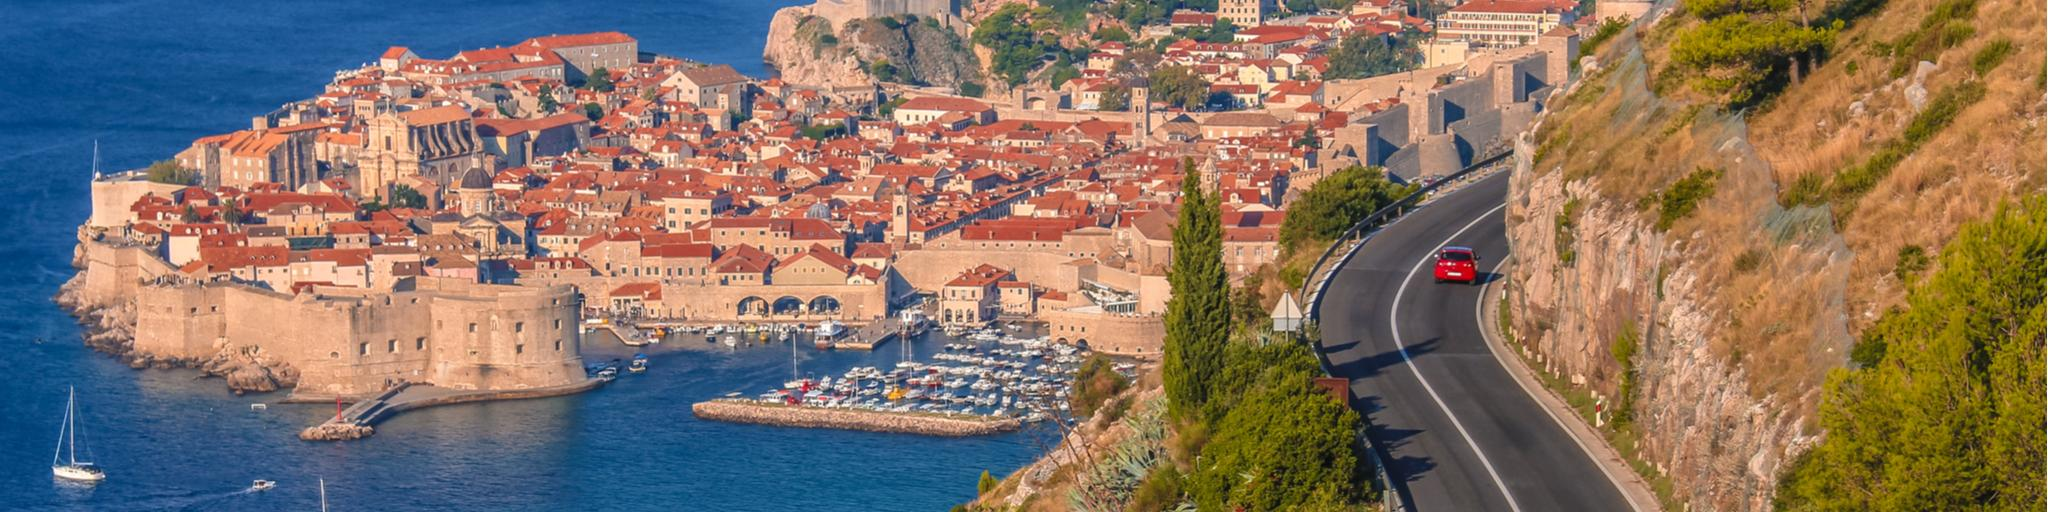 Cars driving along a coastal road in Croatia with the old town of Dubrovnik in the background